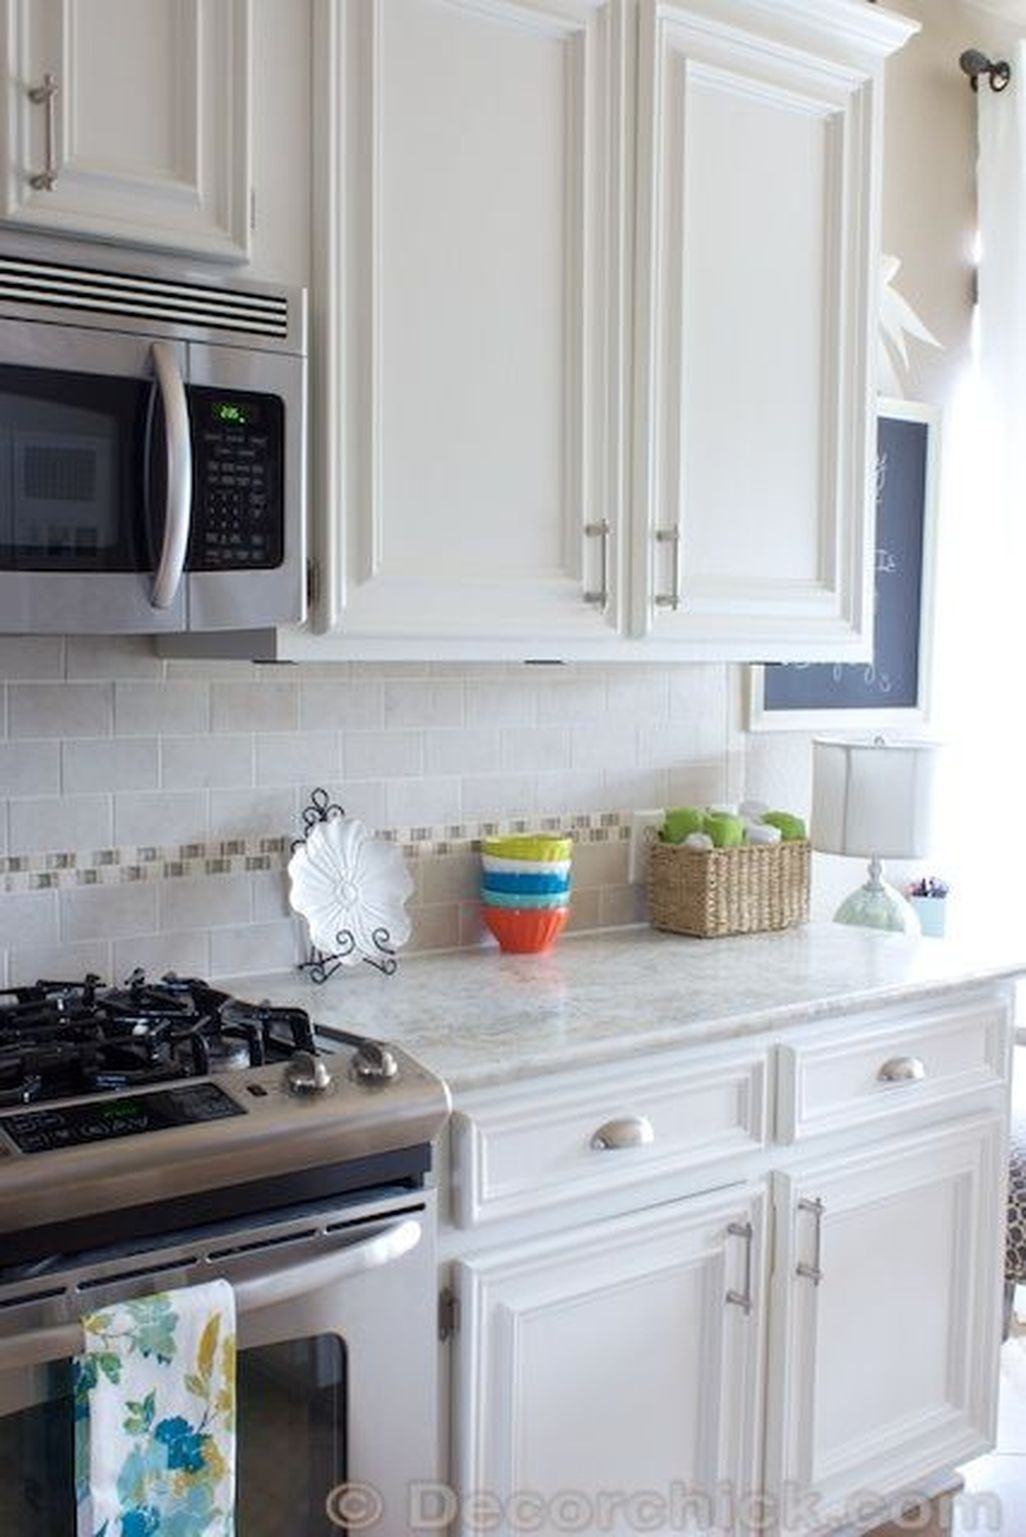 Best White Kitchen Cabinet Design Ideas 16